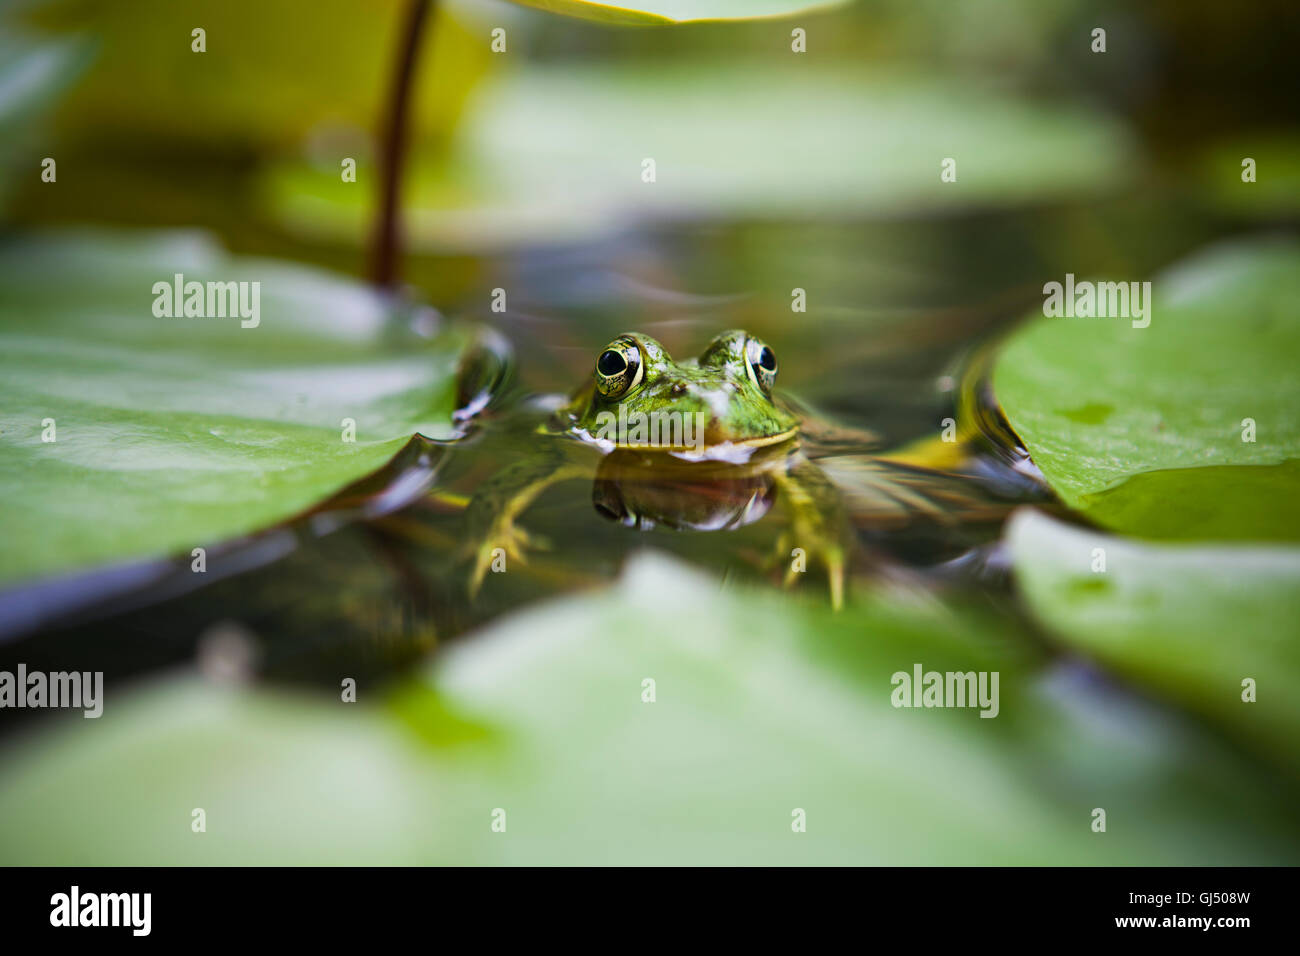 Close-up of a frog floating beside some lily pads - Stock Image